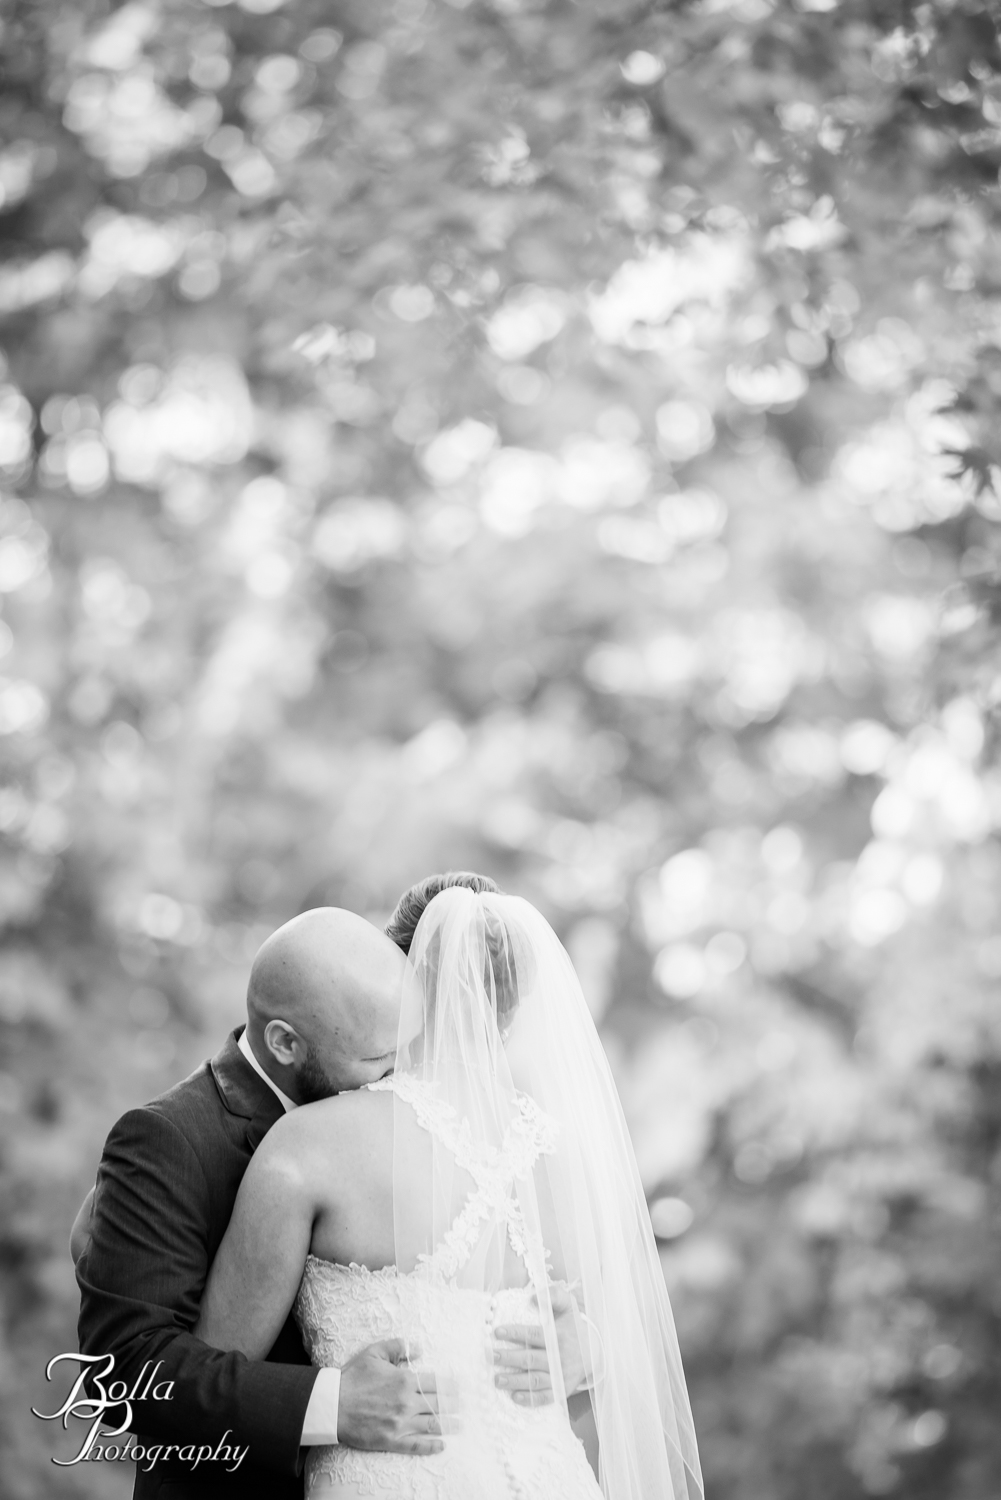 Bolla_Photography_St_Louis_wedding_photographer-0166.jpg